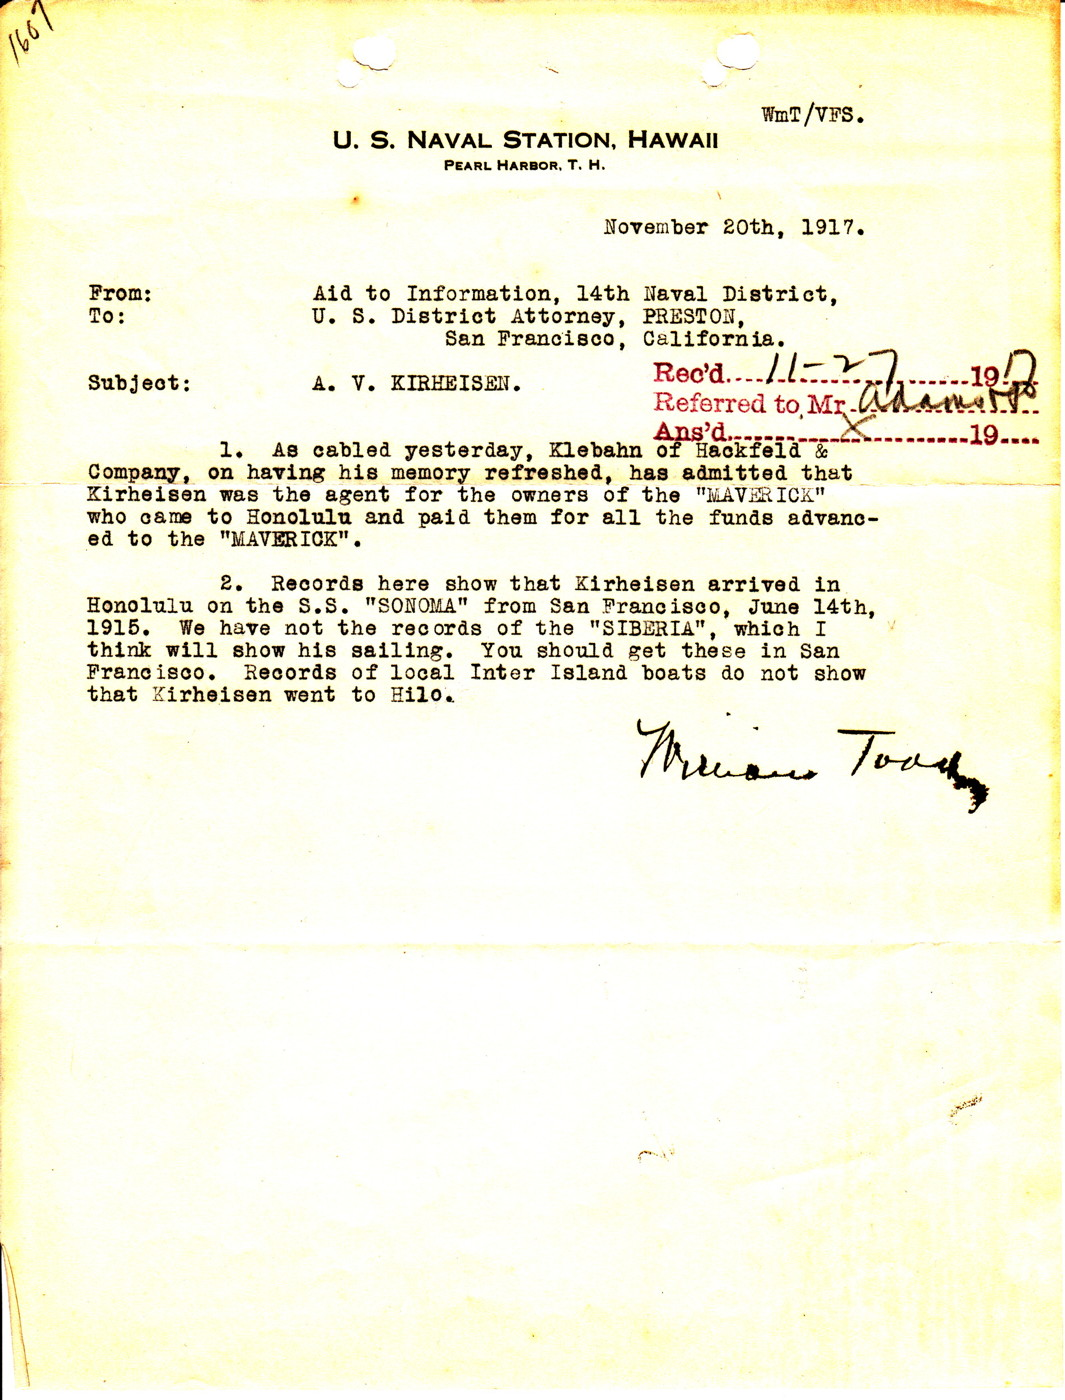 Letter from Aid to Information, 14th Naval District to U S